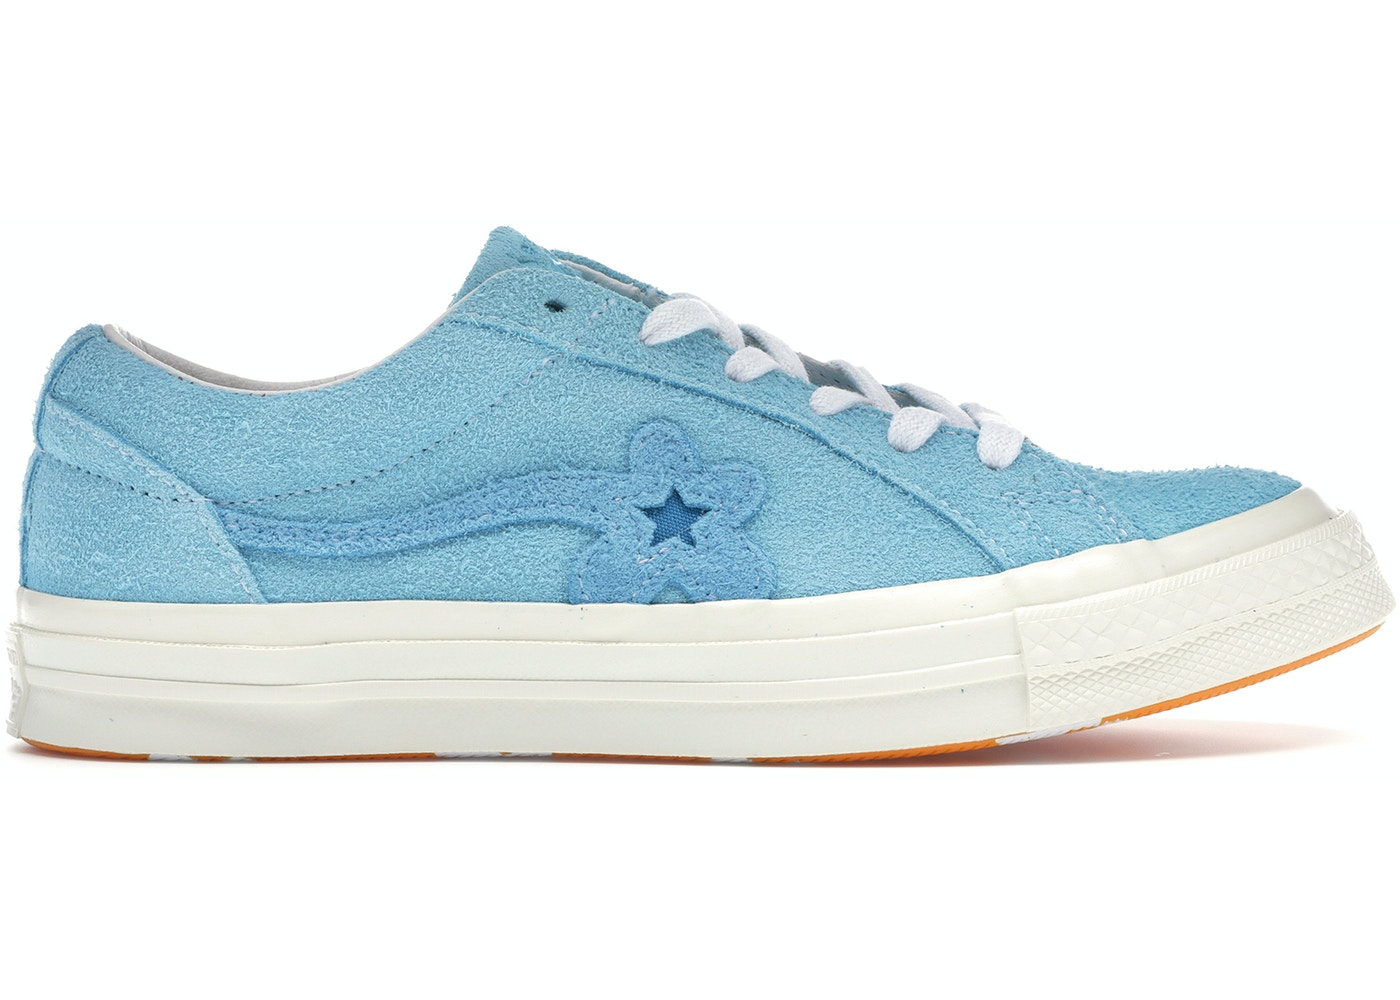 Converse One Star Ox Tyler The Creator Golf Le Fleur Bachelor Blue